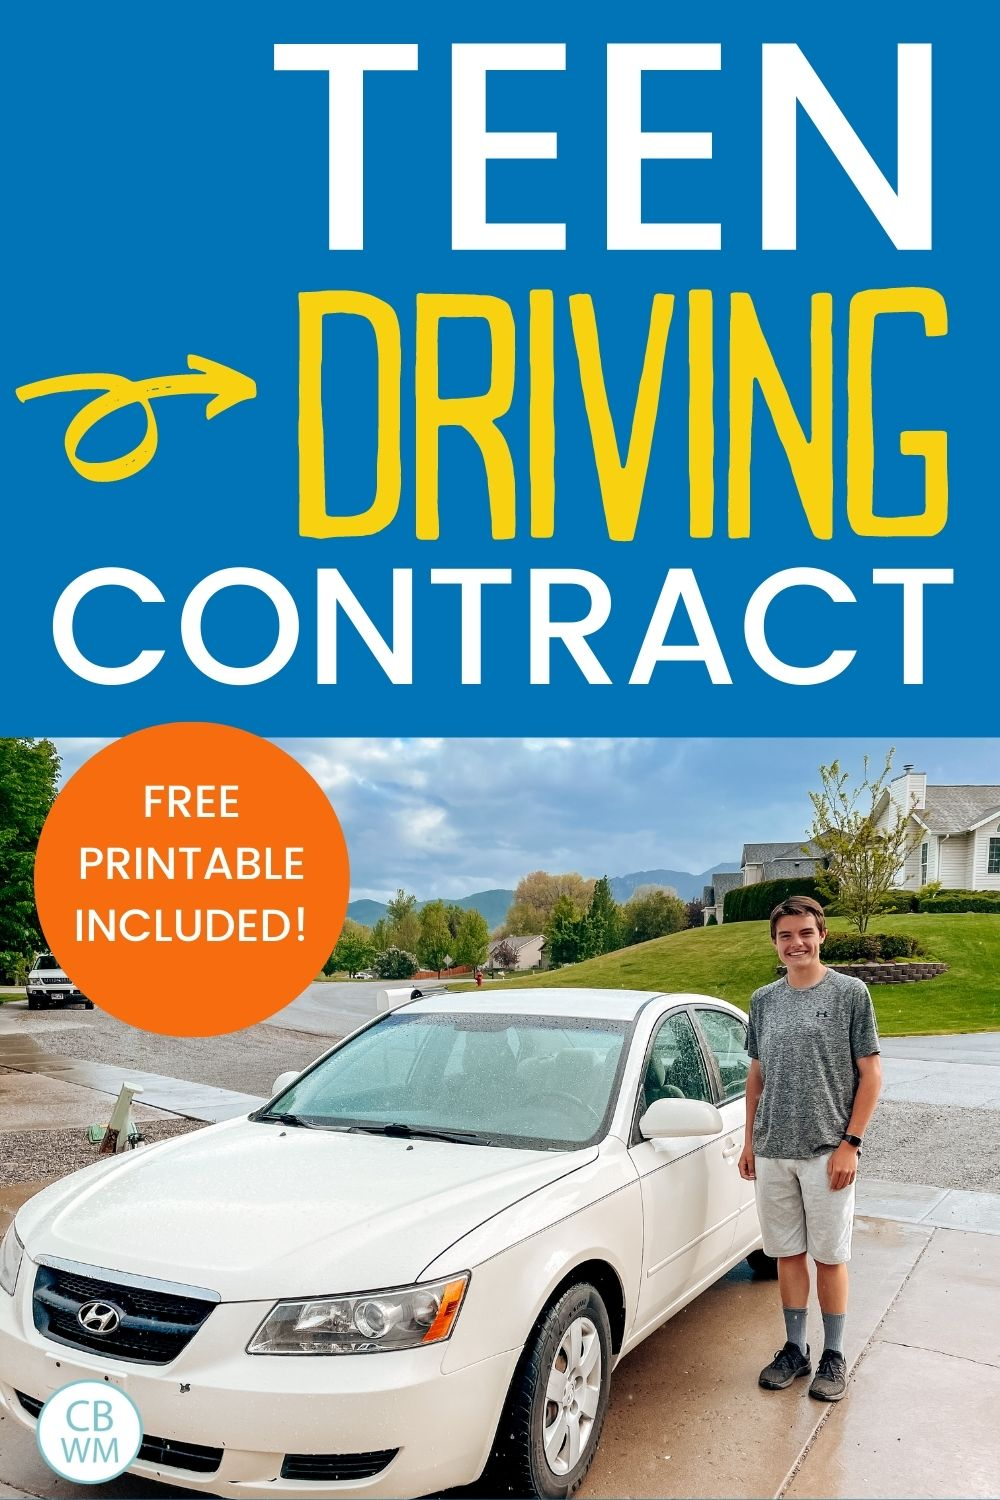 Teen driving contract pinnable image